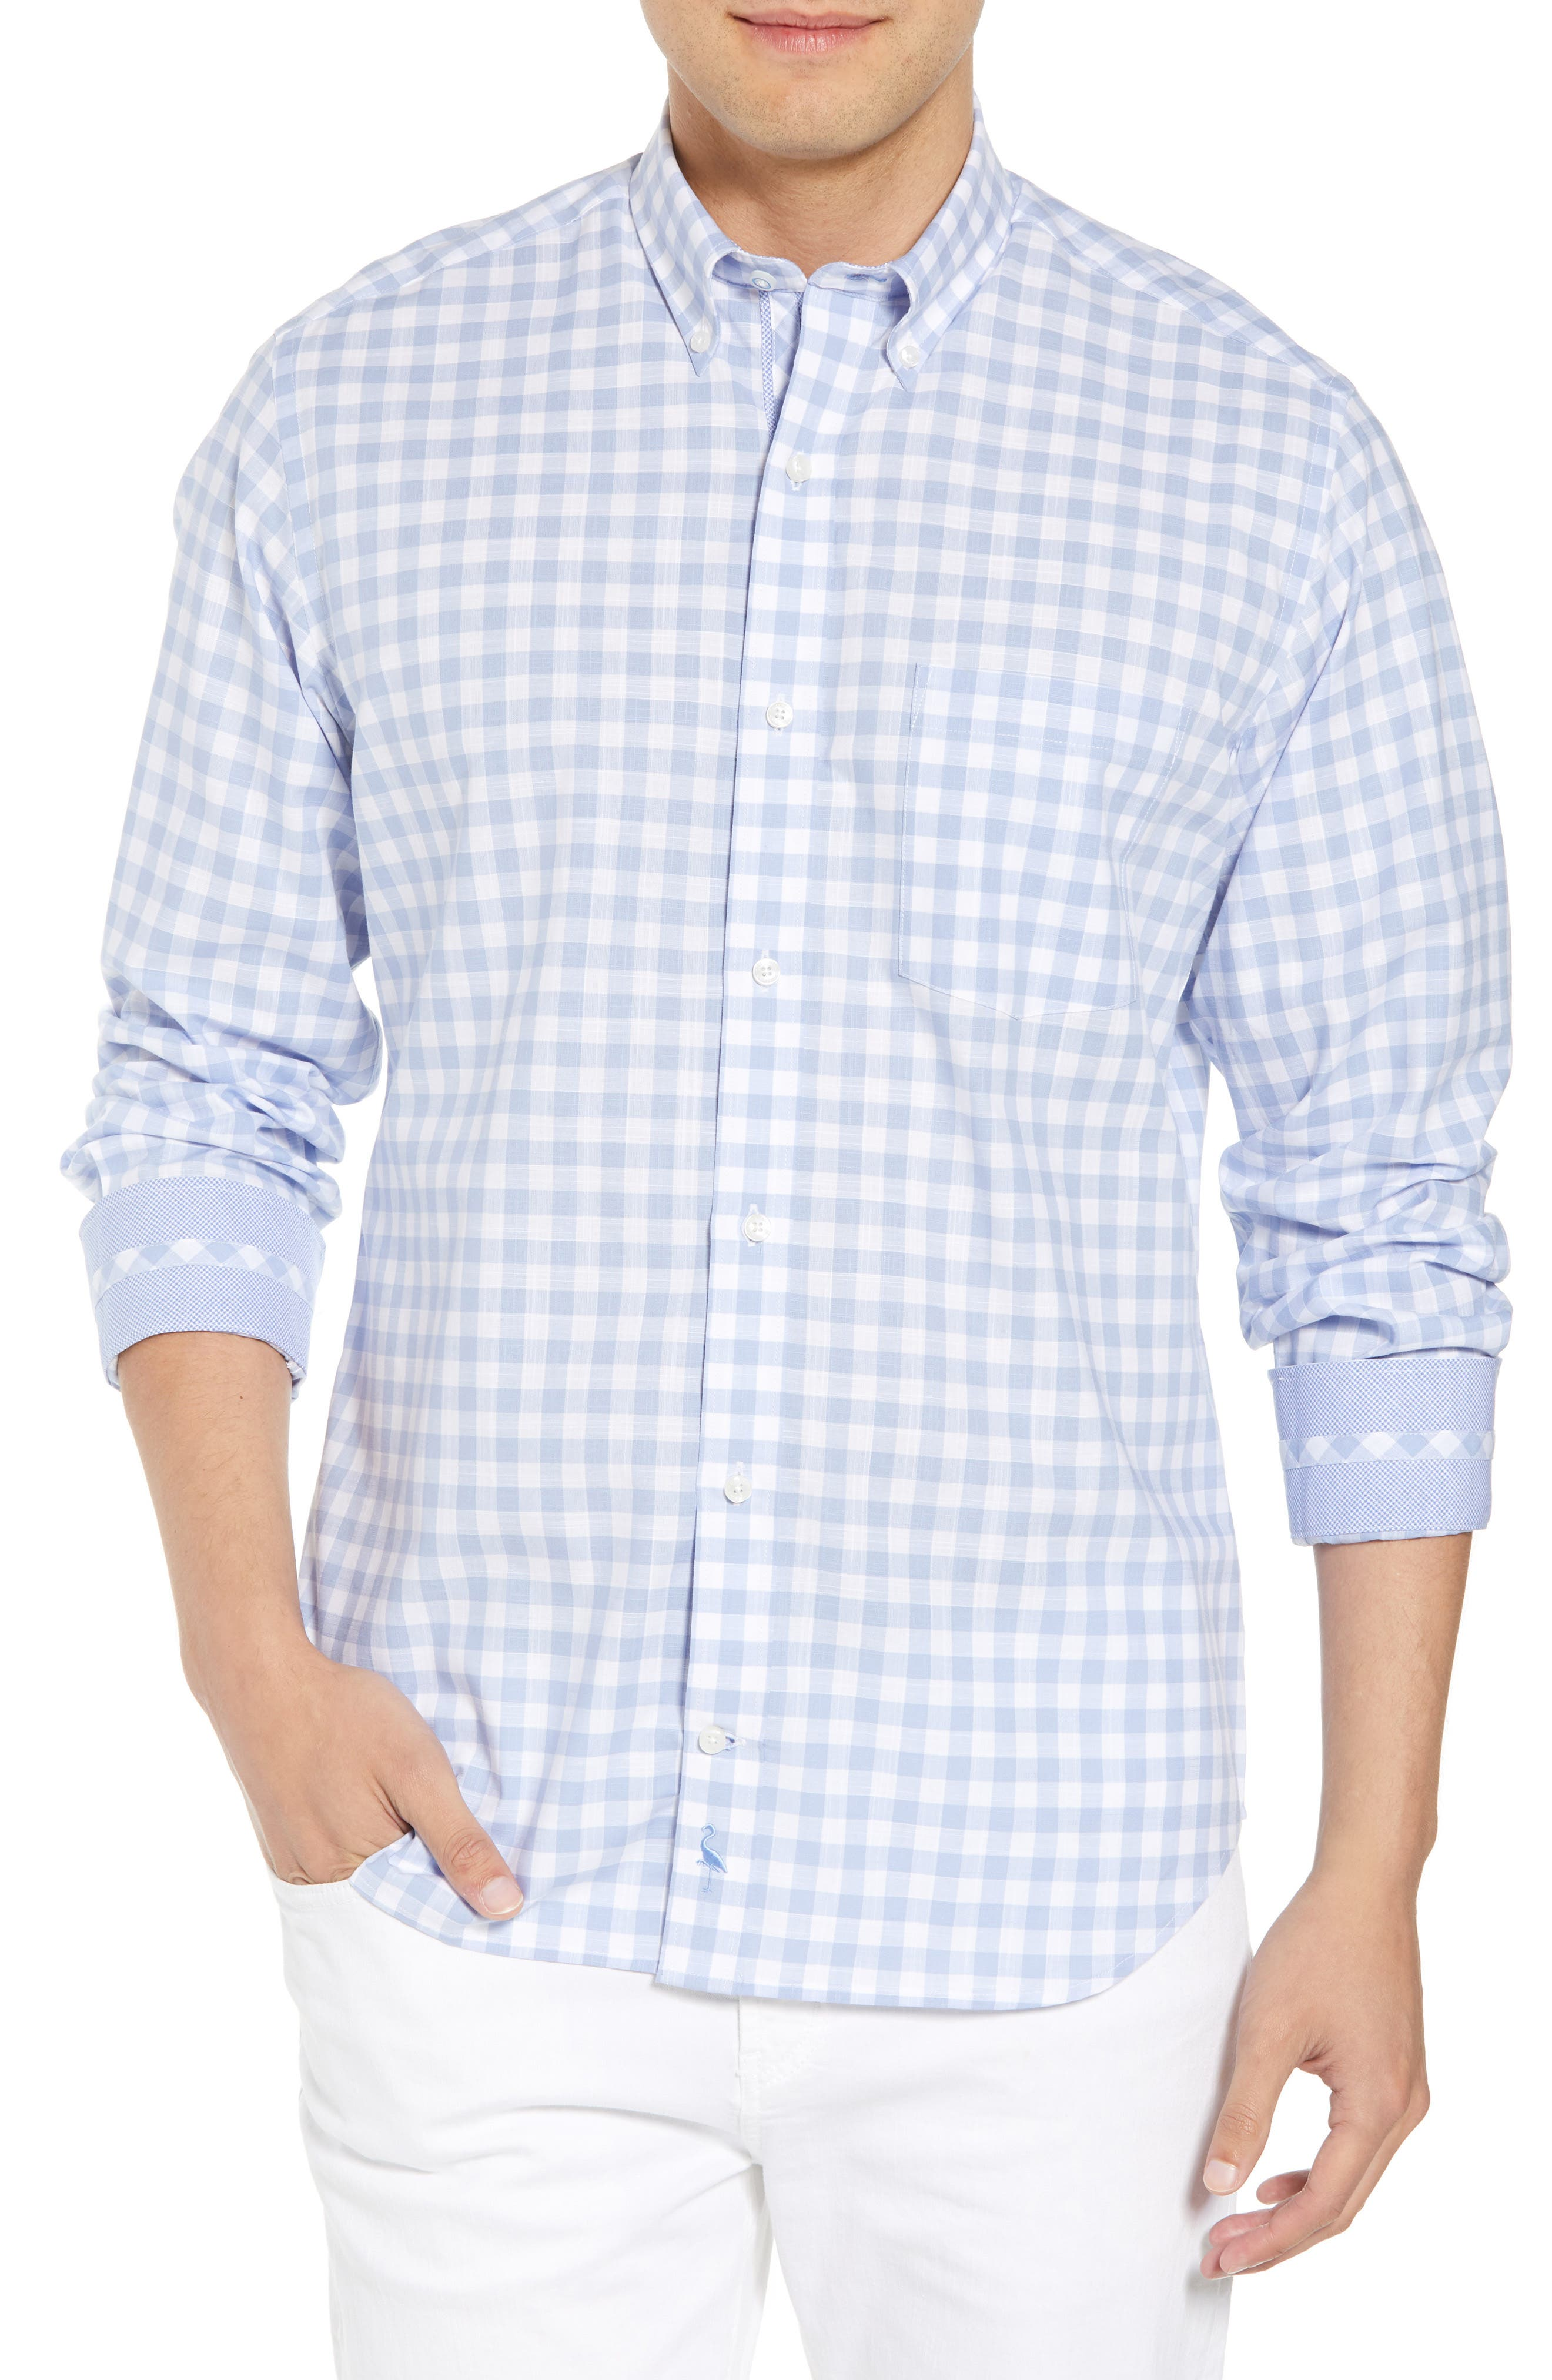 Eitenne Regular Fit Check Sport Shirt,                         Main,                         color,